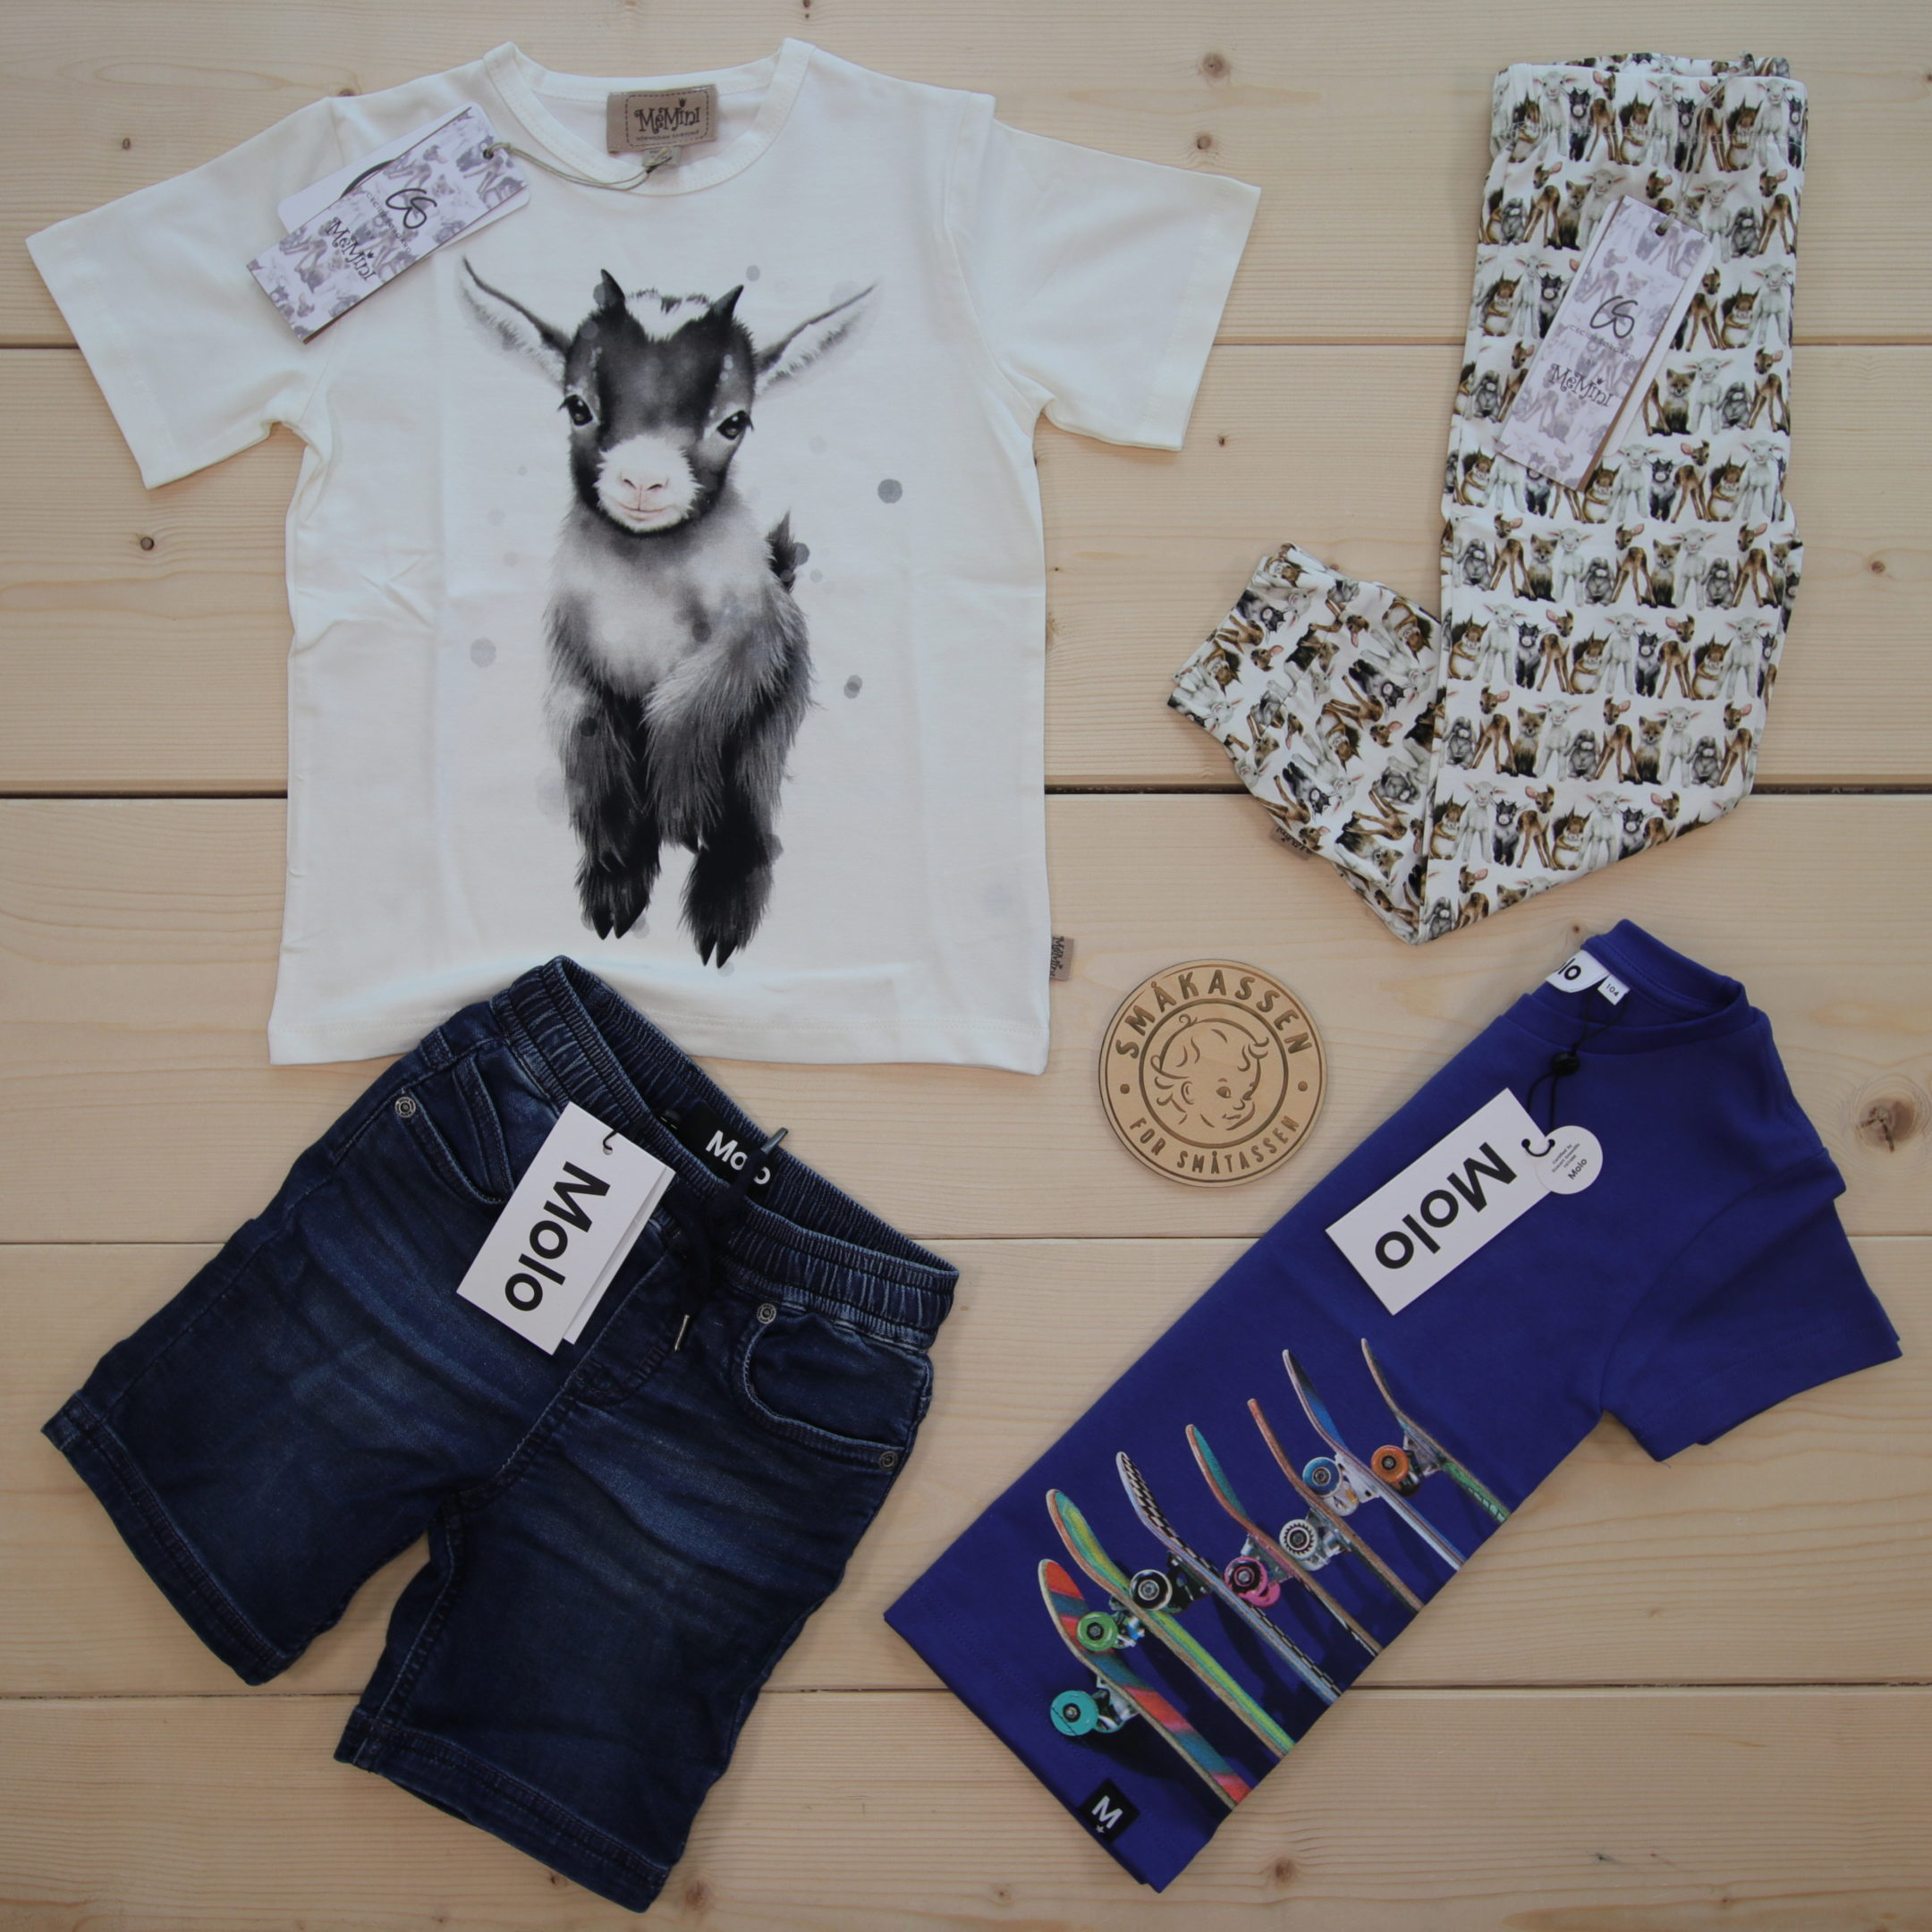 This is Småkassen that we prepared for a boy in the styles cute and cool in size 104.